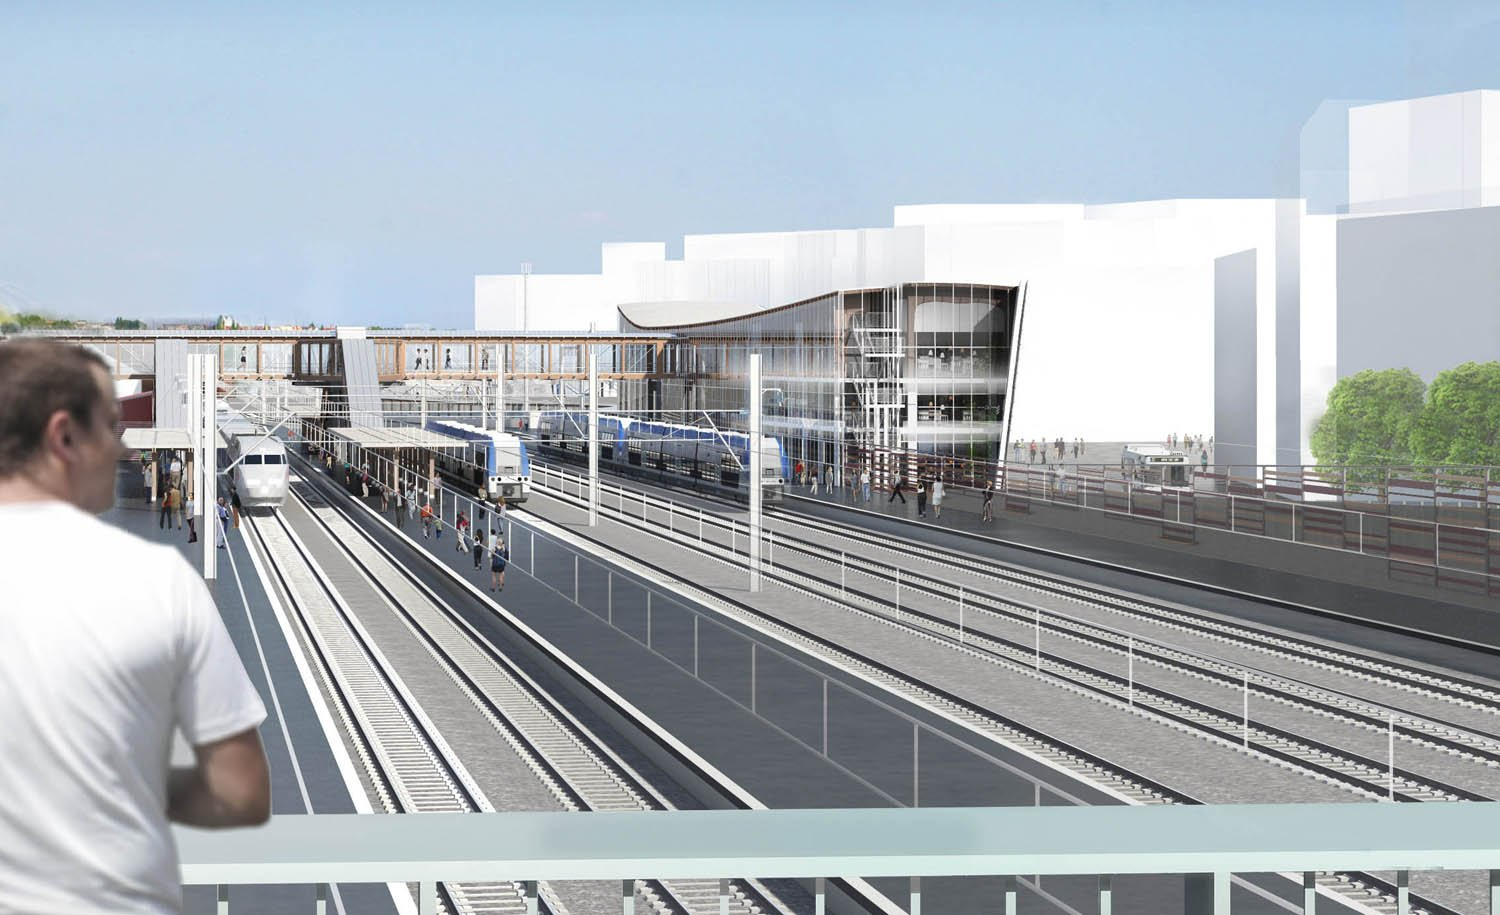 West facade from the bridge © SNCF-AREP / Illustrator: LAcellule 3D, Olivier Jame}